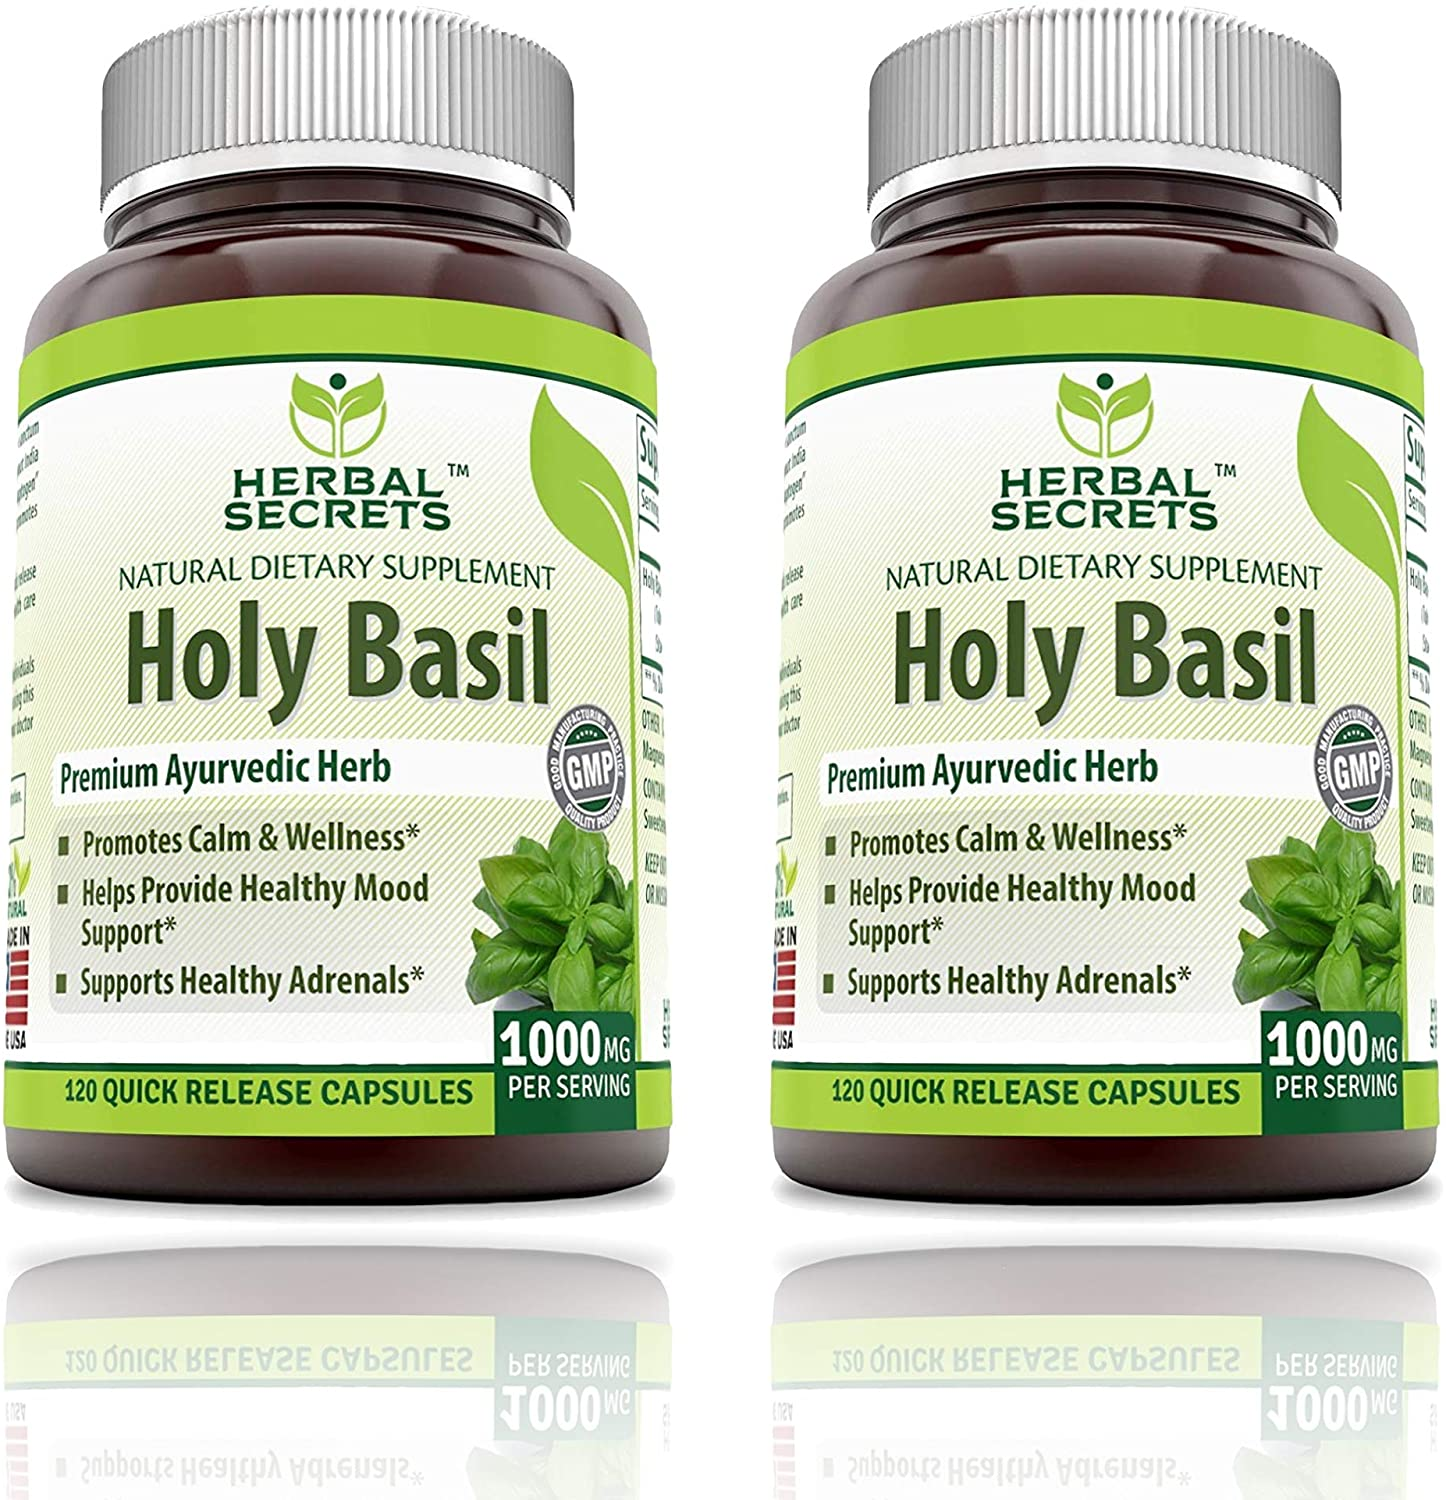 Herbal Secrets Holy Basil 1000 Mg Per Serving 120 Capsules (Non-GMO)- Promotes Calm & Wellness, Helps Provide Healthy Mood Support, Support Healthy Adrenals* (Pack of 2 - 240 Capsules Total)